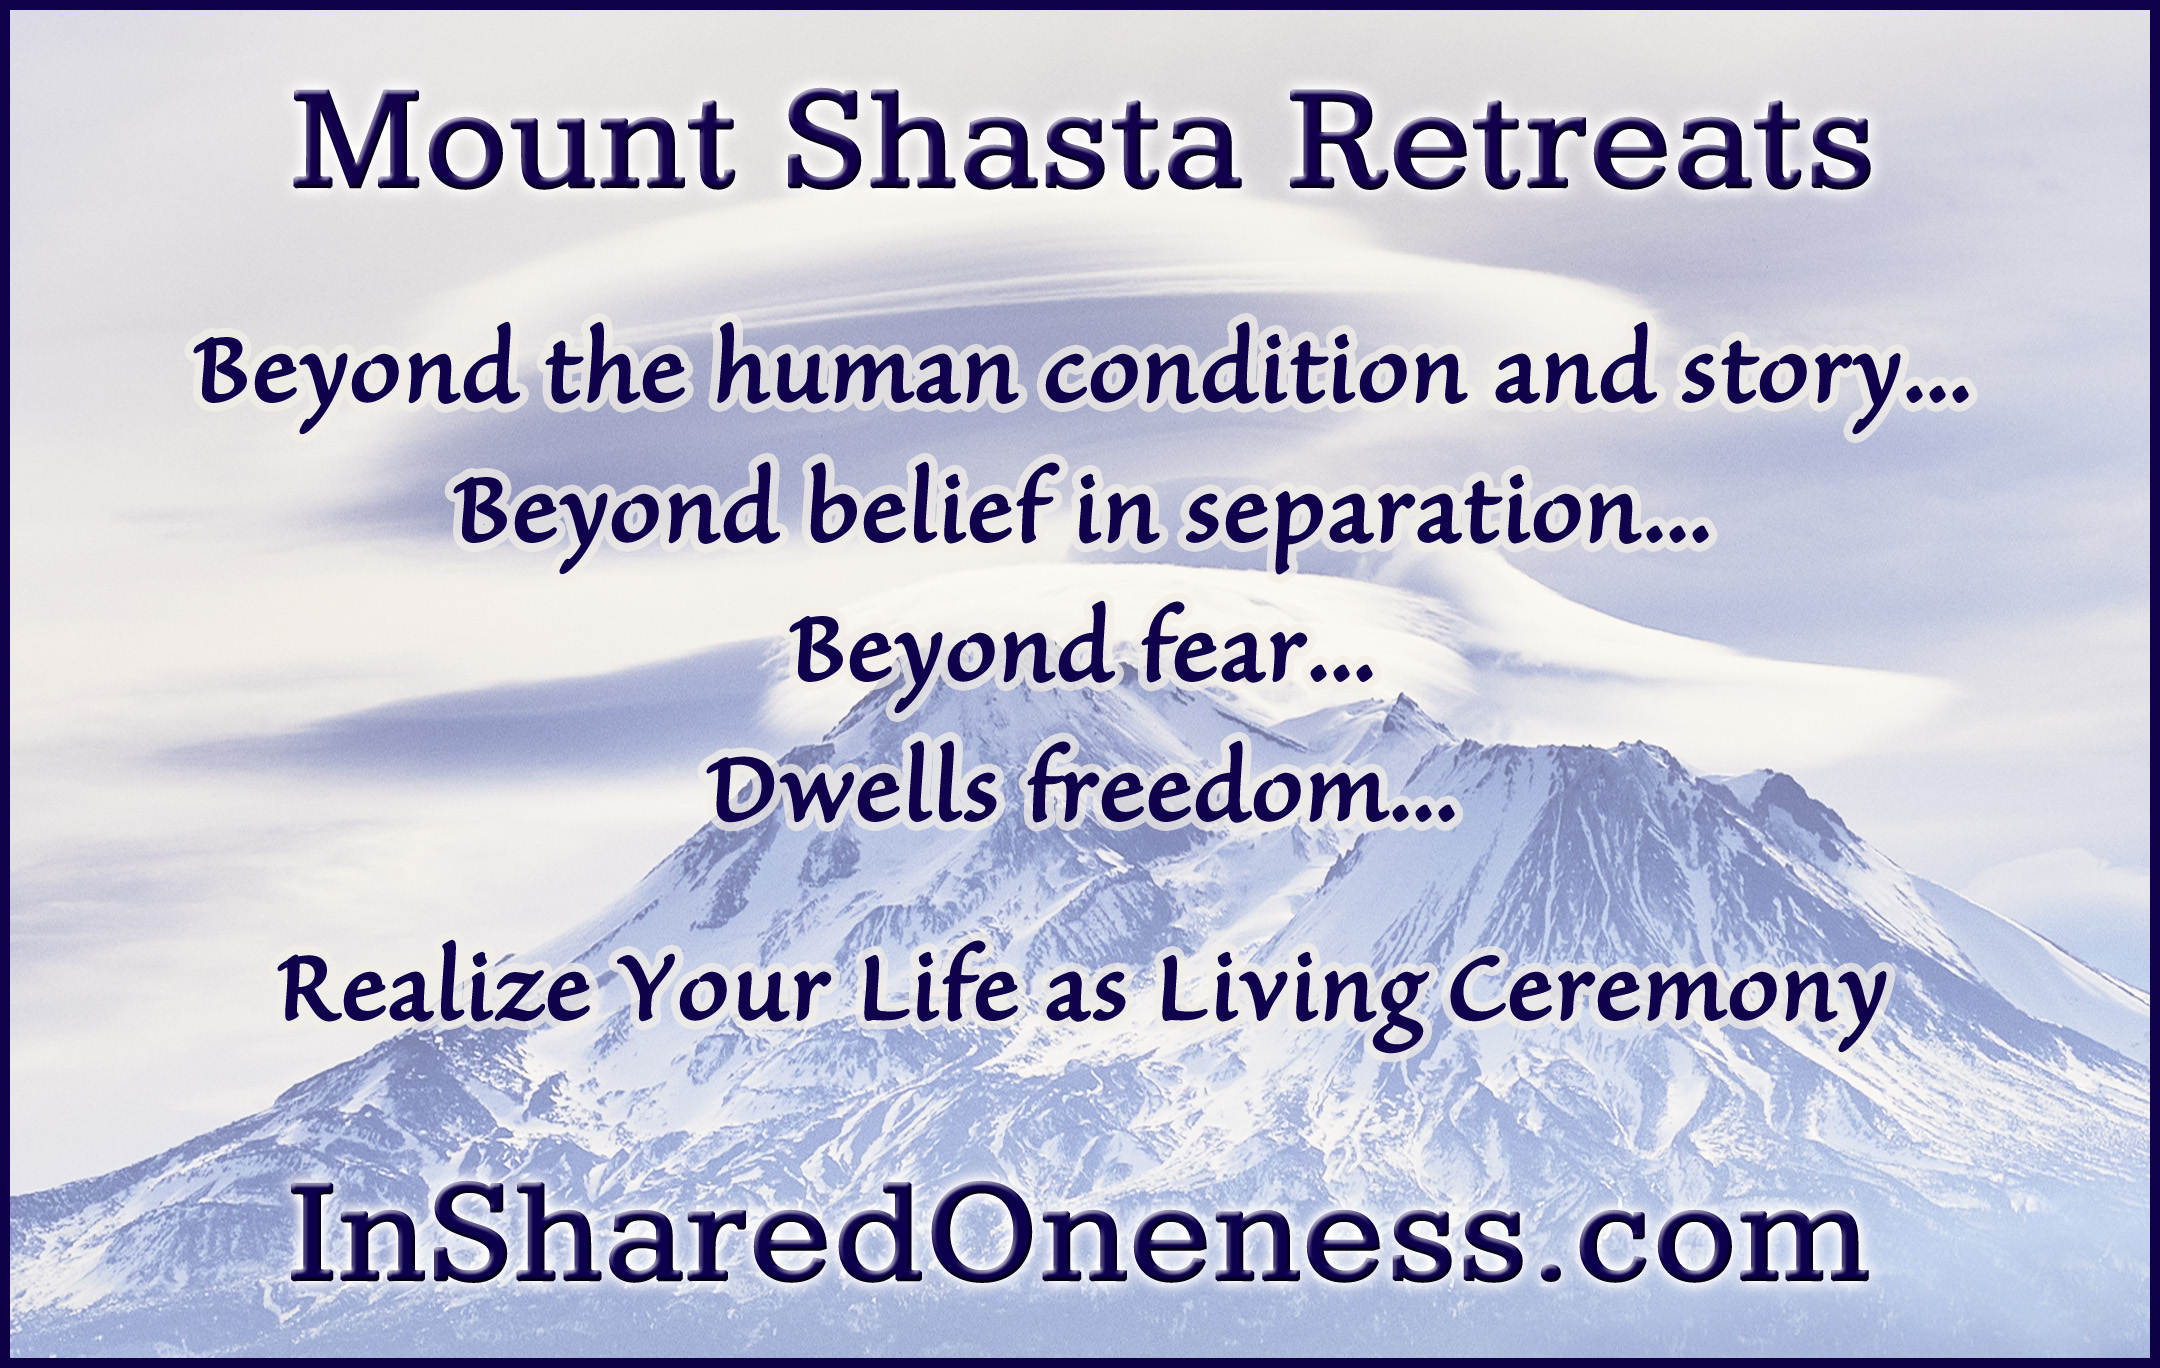 Mount Shasta Retreats by In Shared Oneness